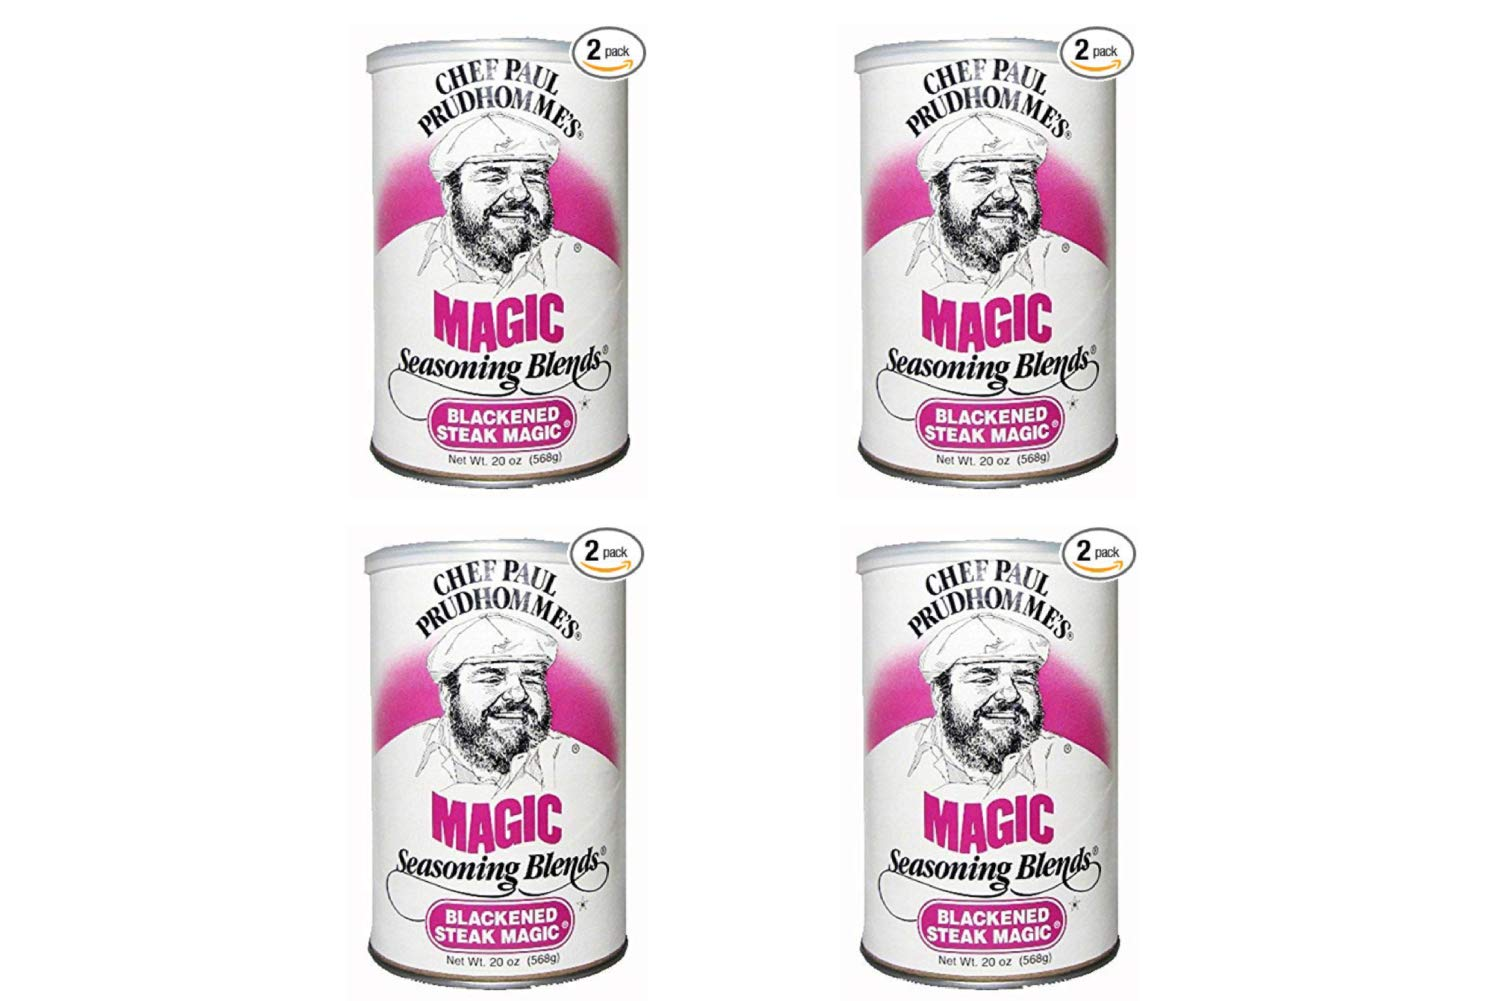 Chef Paul Blackened Steak Magic Seasoning, 20-Ounce Canisters (Pack of 2) (4 Pack)